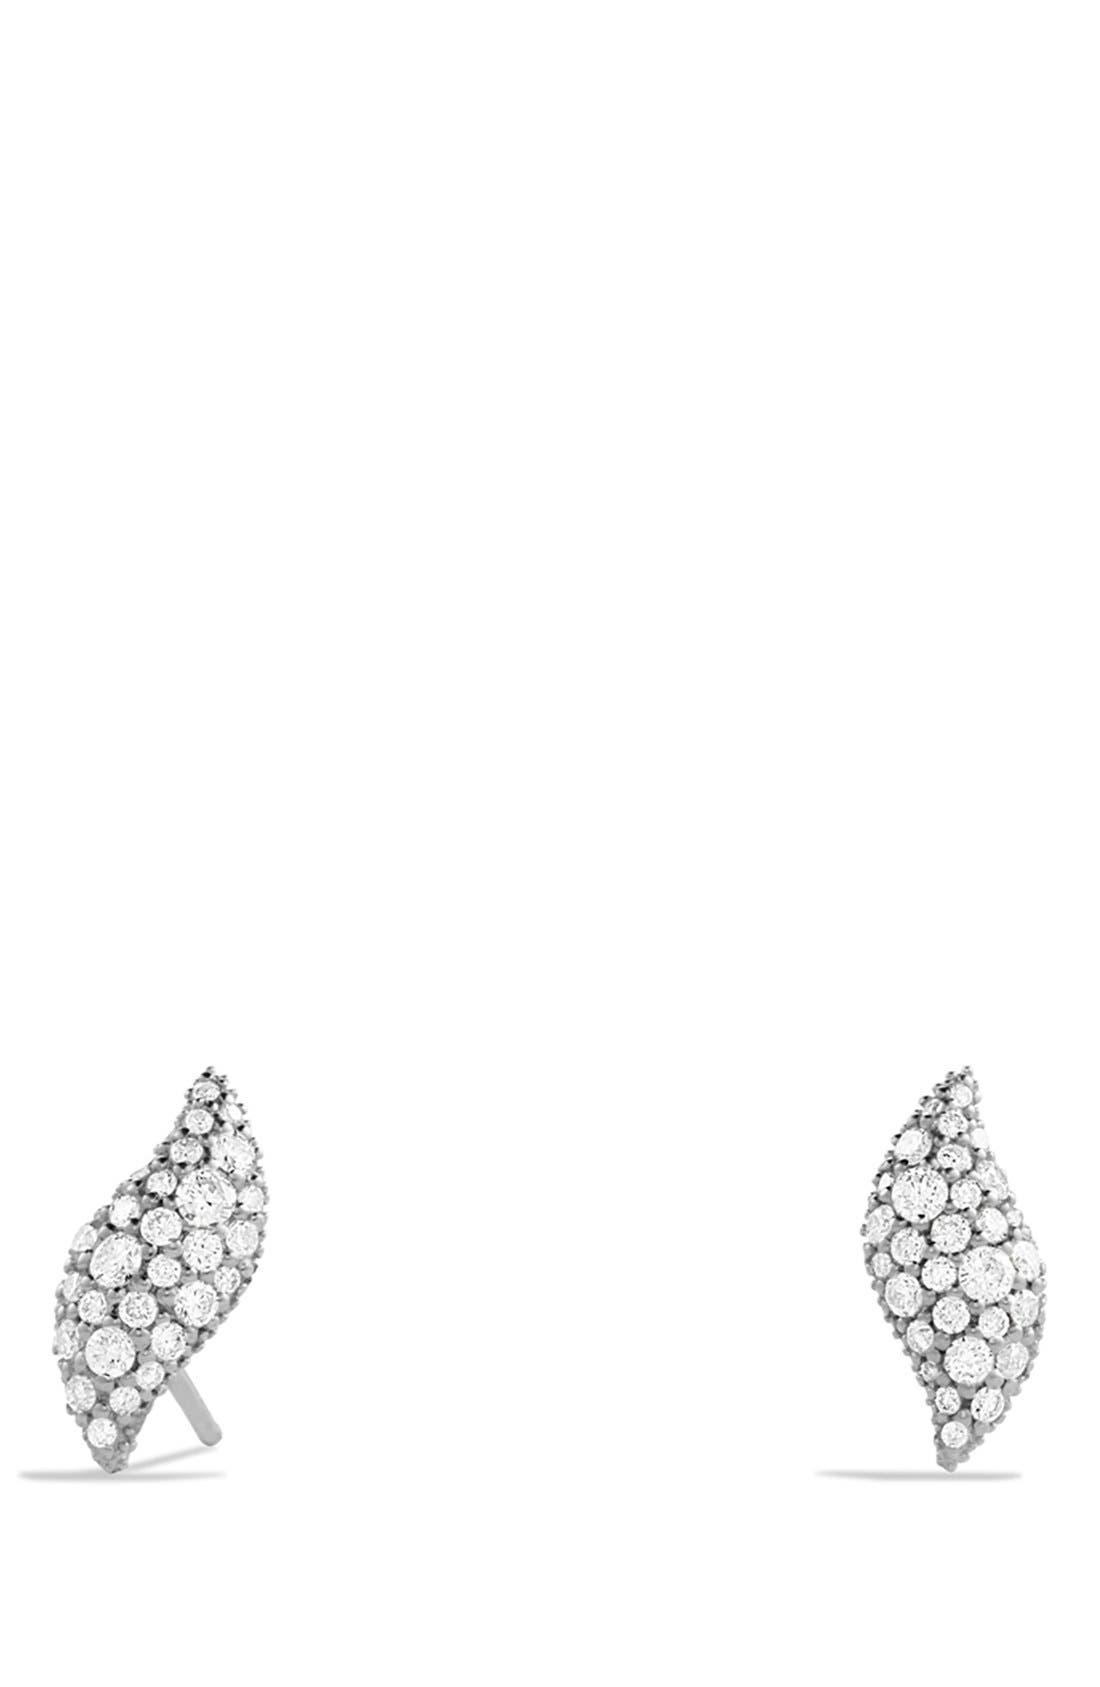 'Hampton Cable' Earrings with Diamonds,                             Main thumbnail 1, color,                             Diamond